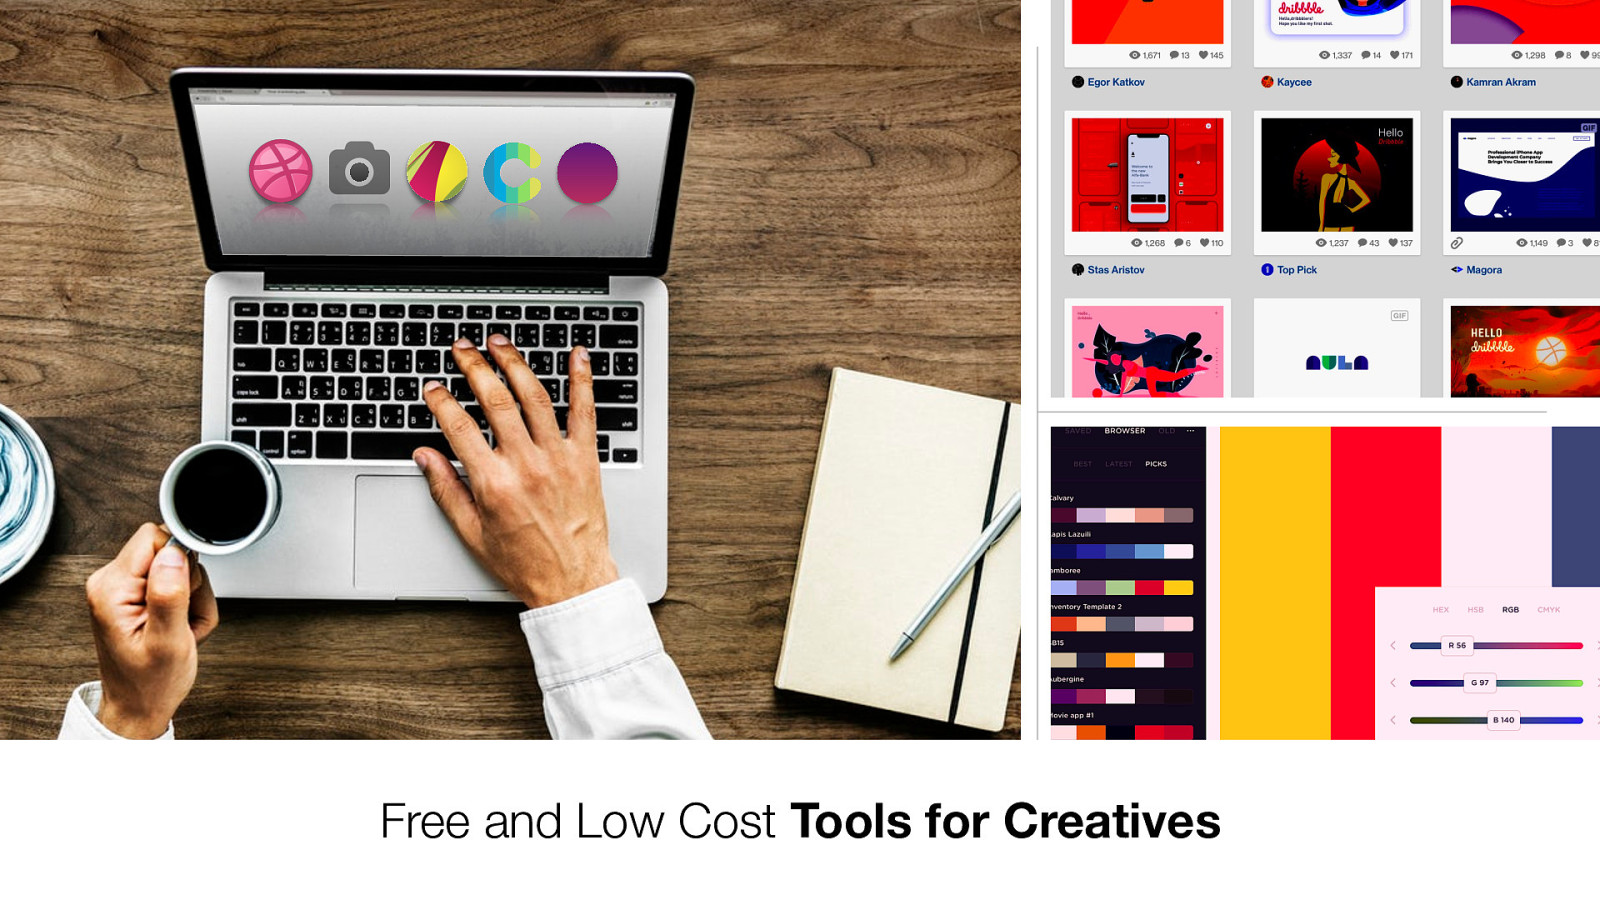 Free and Low Cost Tools for Creatives